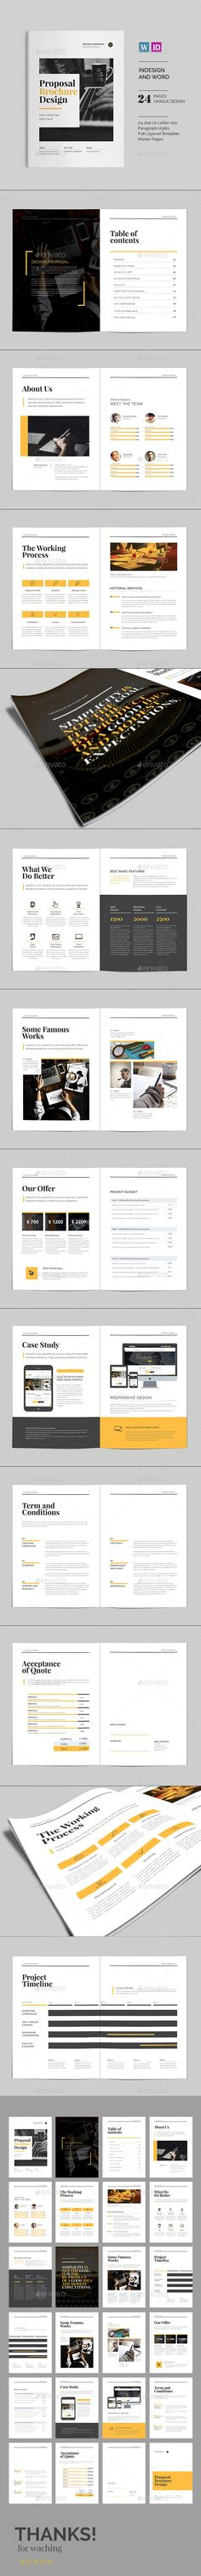 Commercial Proposal Format Amazing The Business Proposal Template  Business Proposal Template .